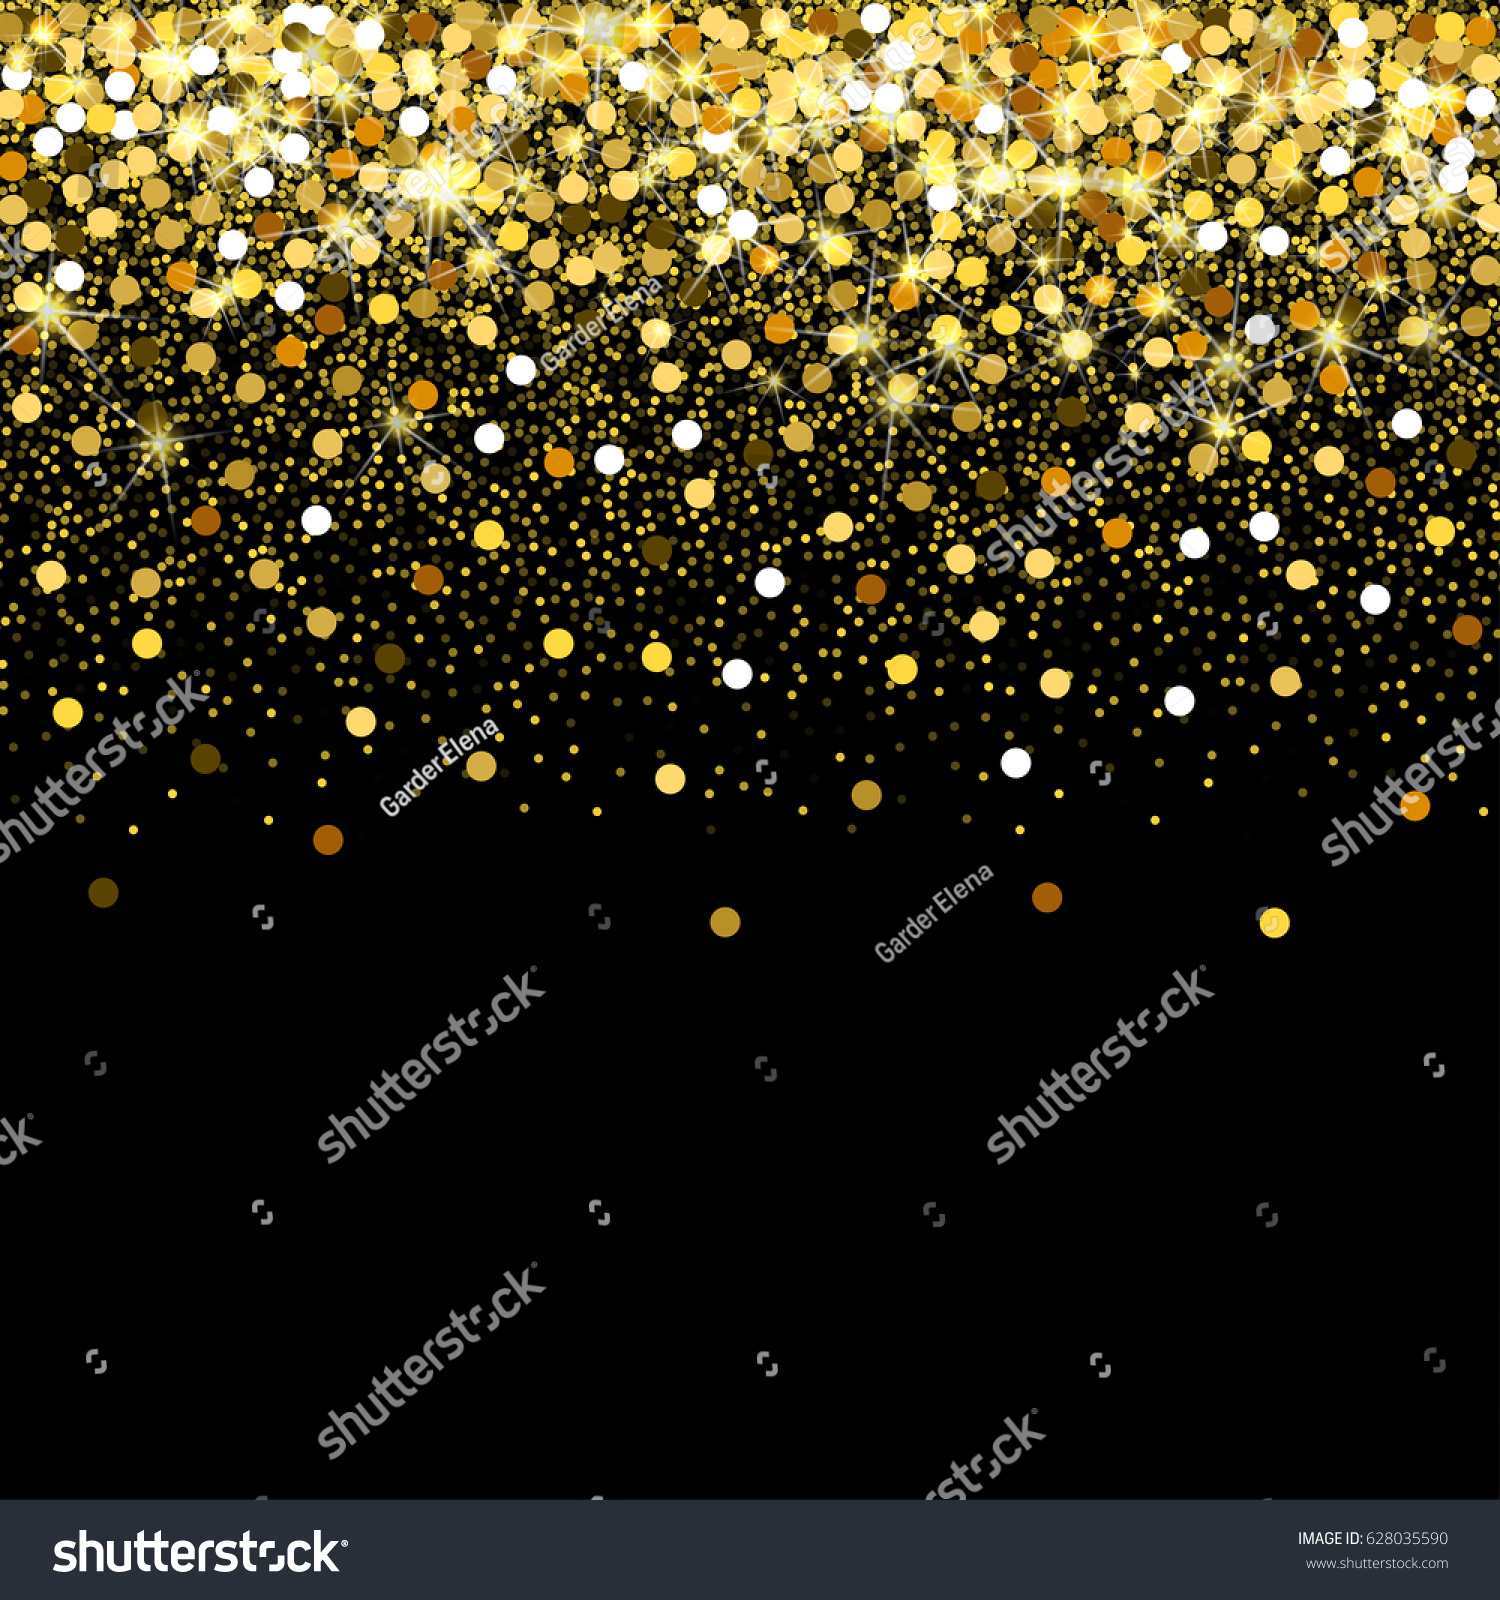 Gold glitter bright vector transparent background golden sparkles - Gold Glitter Frame With Empty Space For Text Scattered Golden Confetti Border On Transparent Background